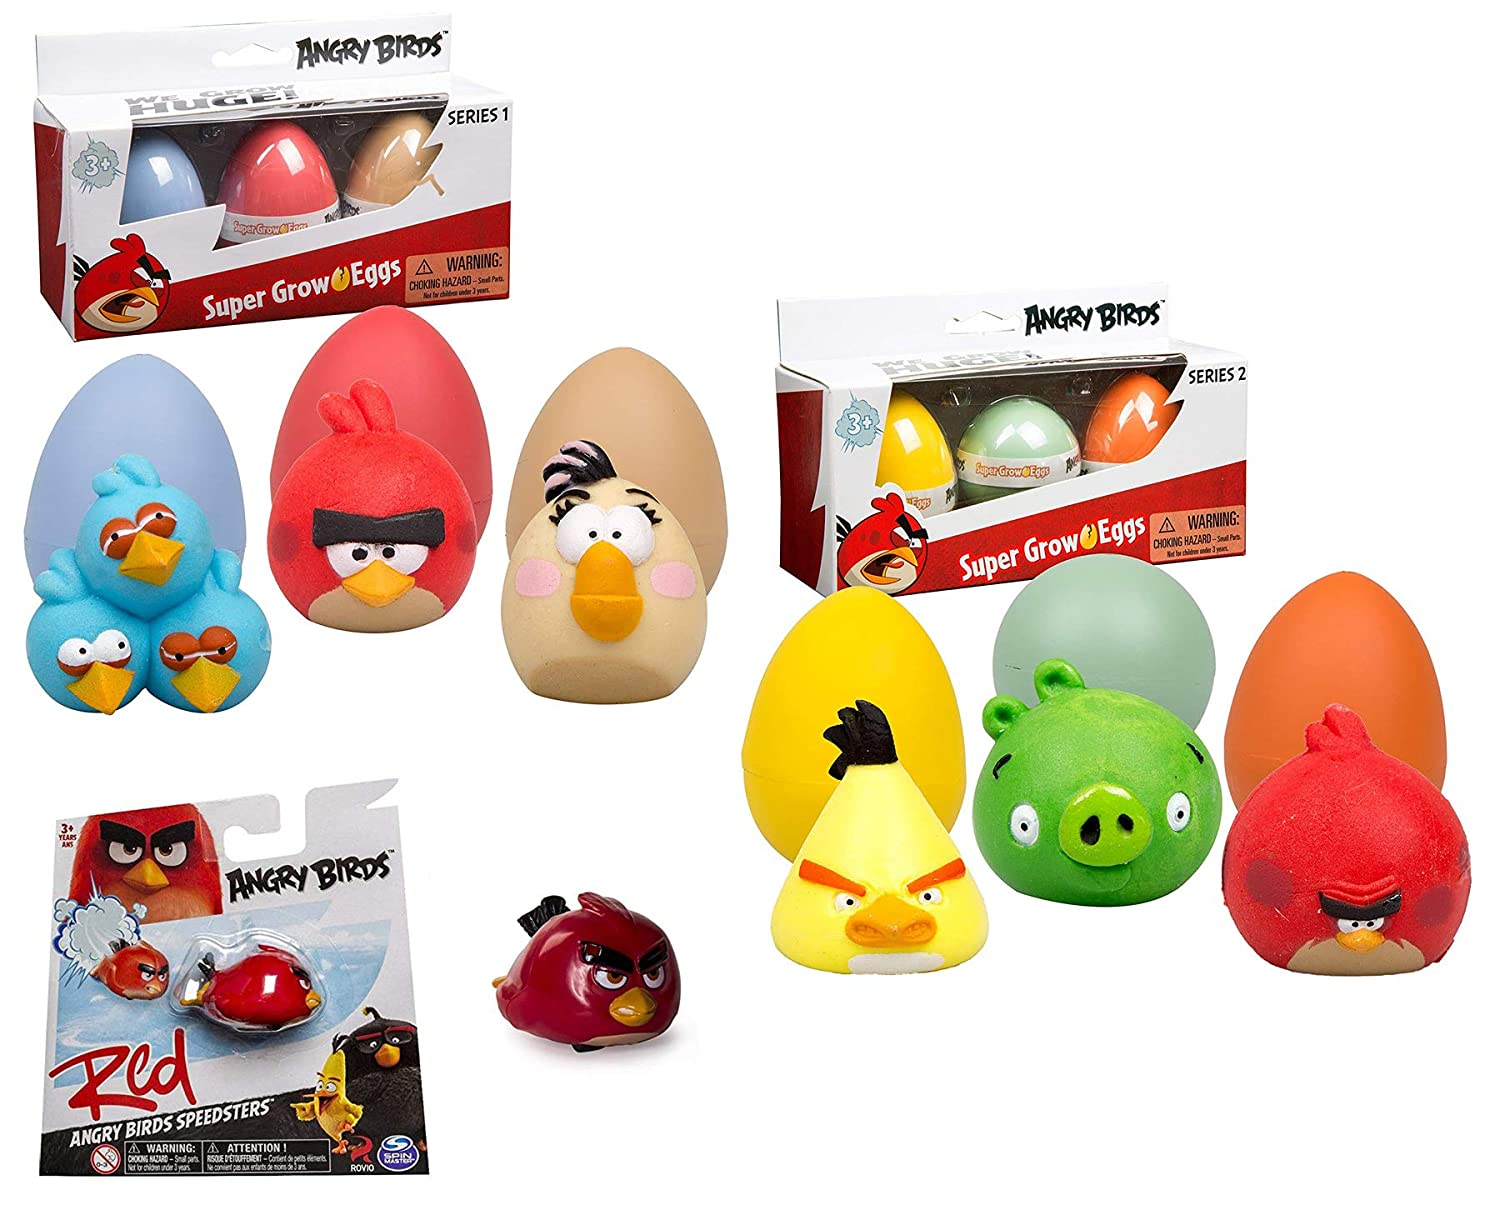 2 /& Red Bird Speedster Racer Bundle STAYB Matilda Super Grow Figures Series 1 Minion Pig Angry Hatch Figure Eggs Chuck Terence The Blues Birds Red